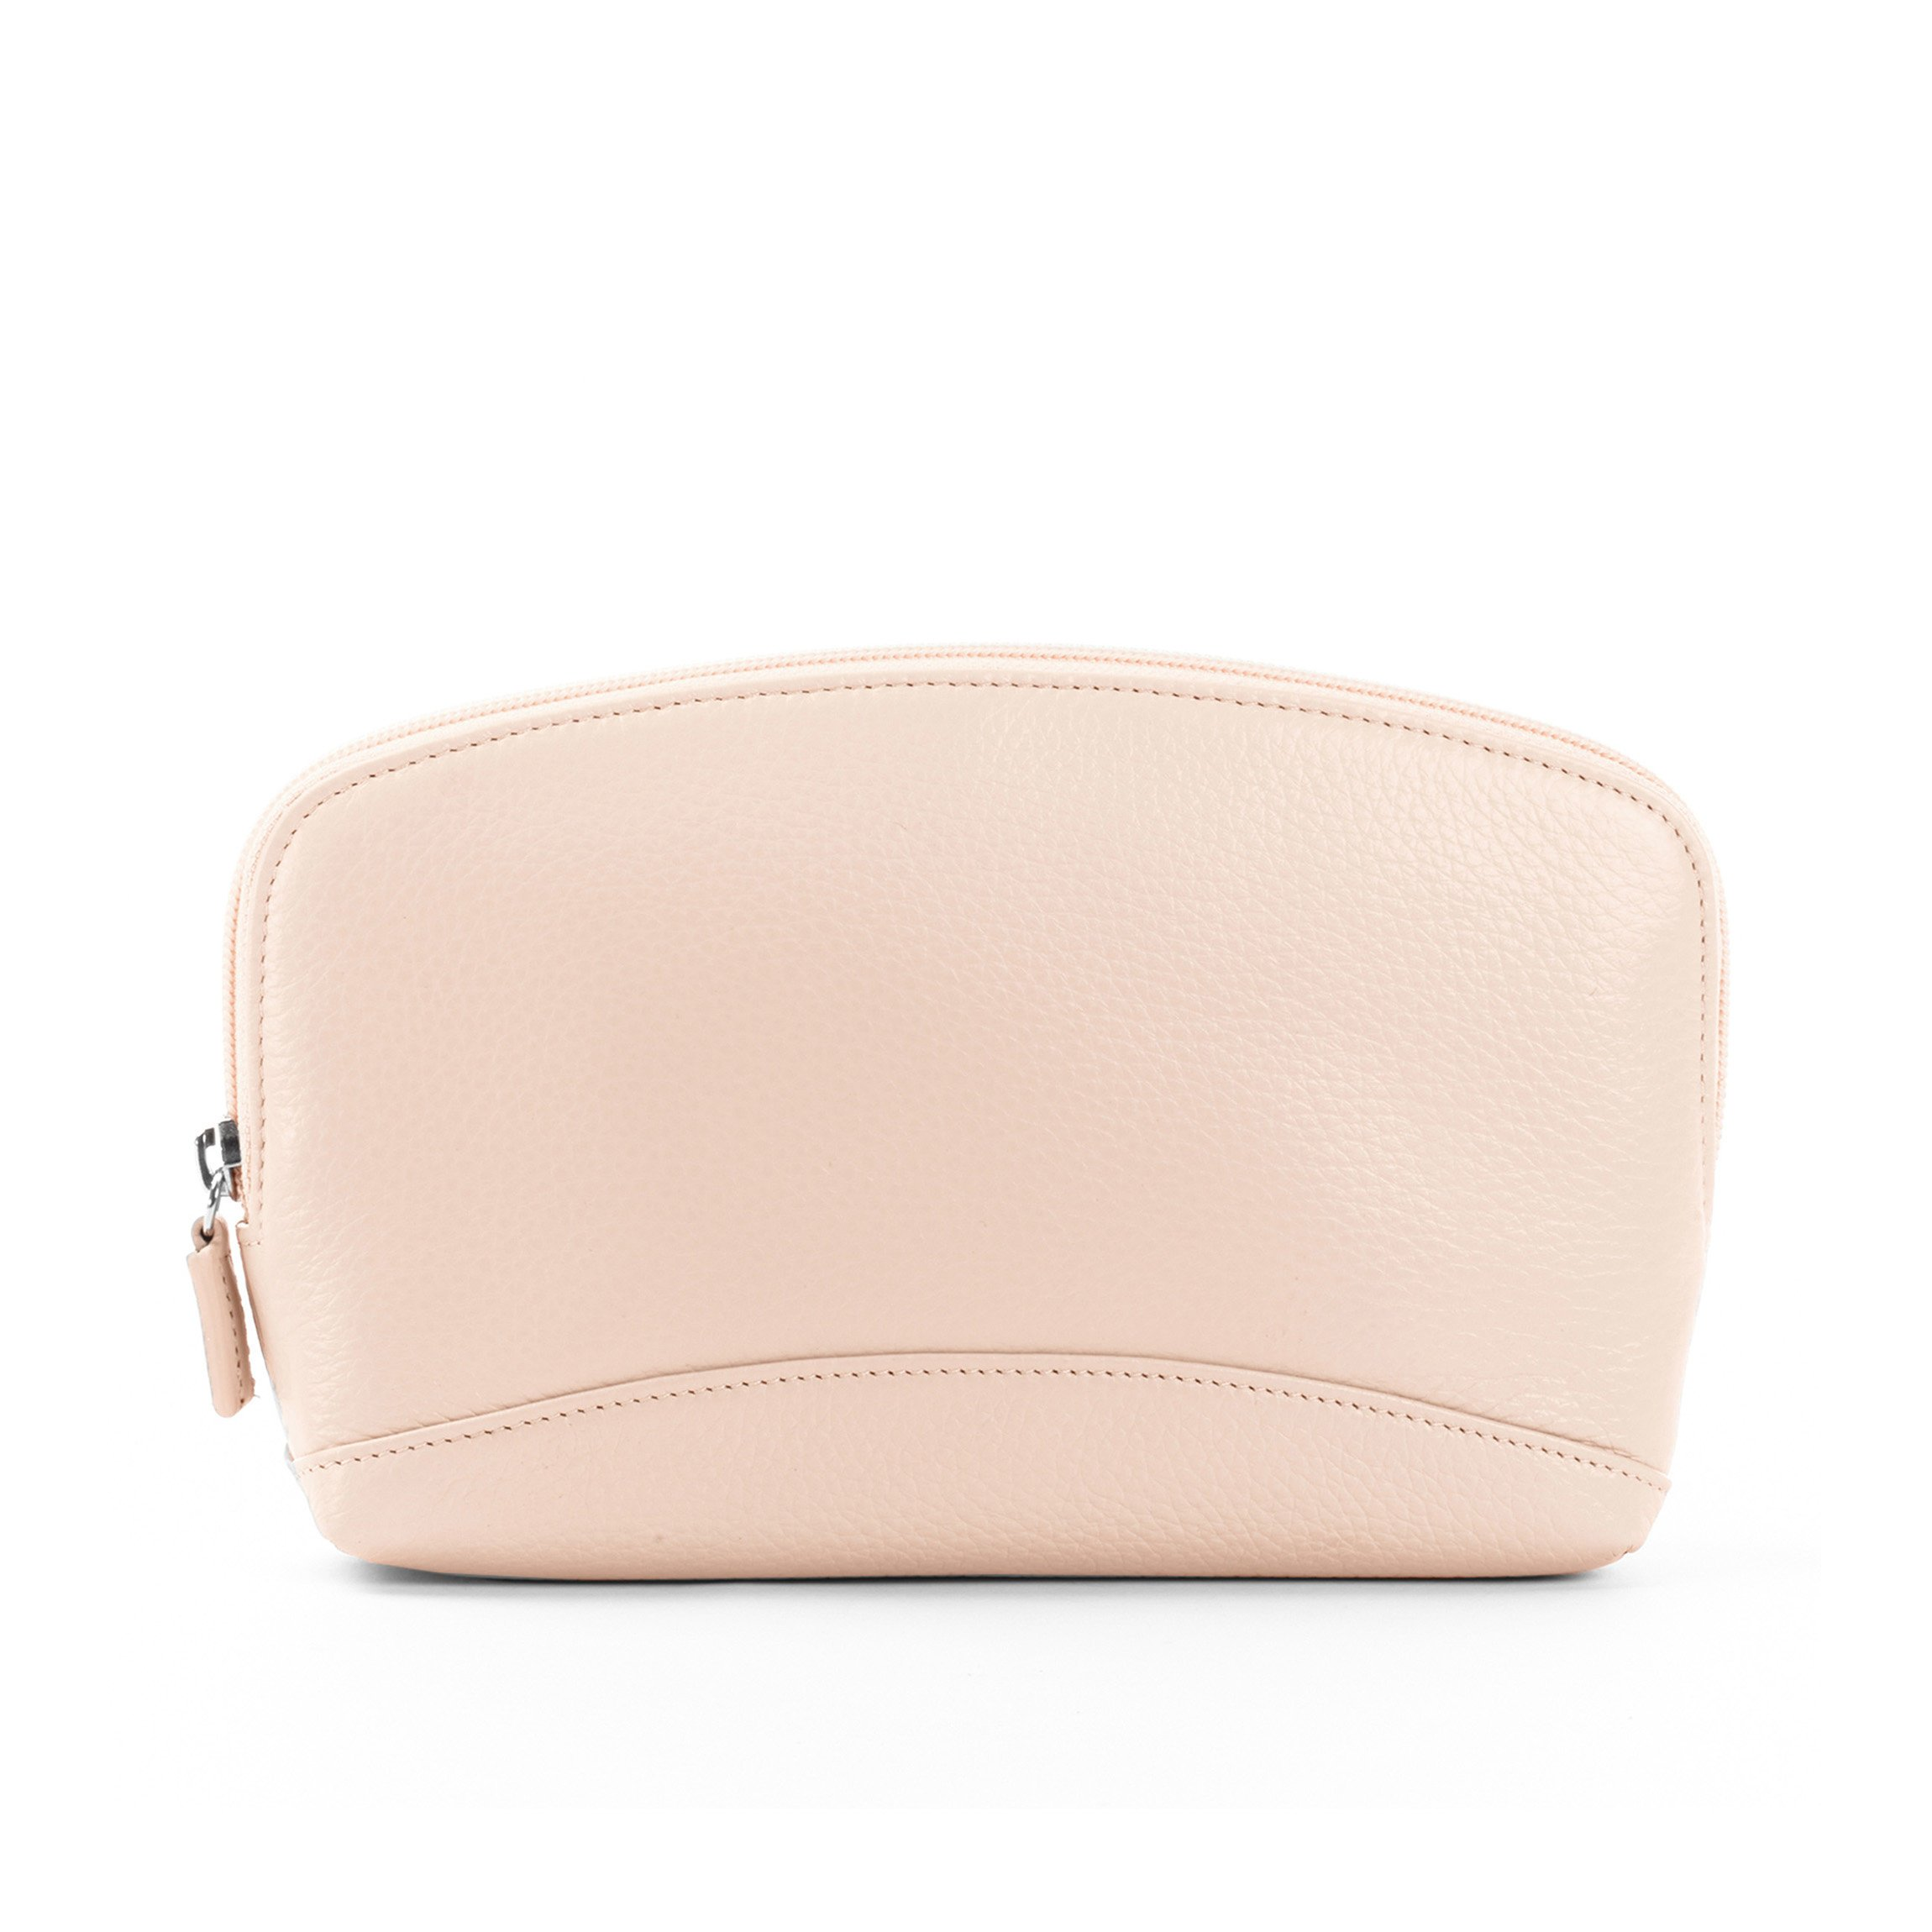 Large Cosmetic Bag - Full Grain Leather Leather - Rose (pink)